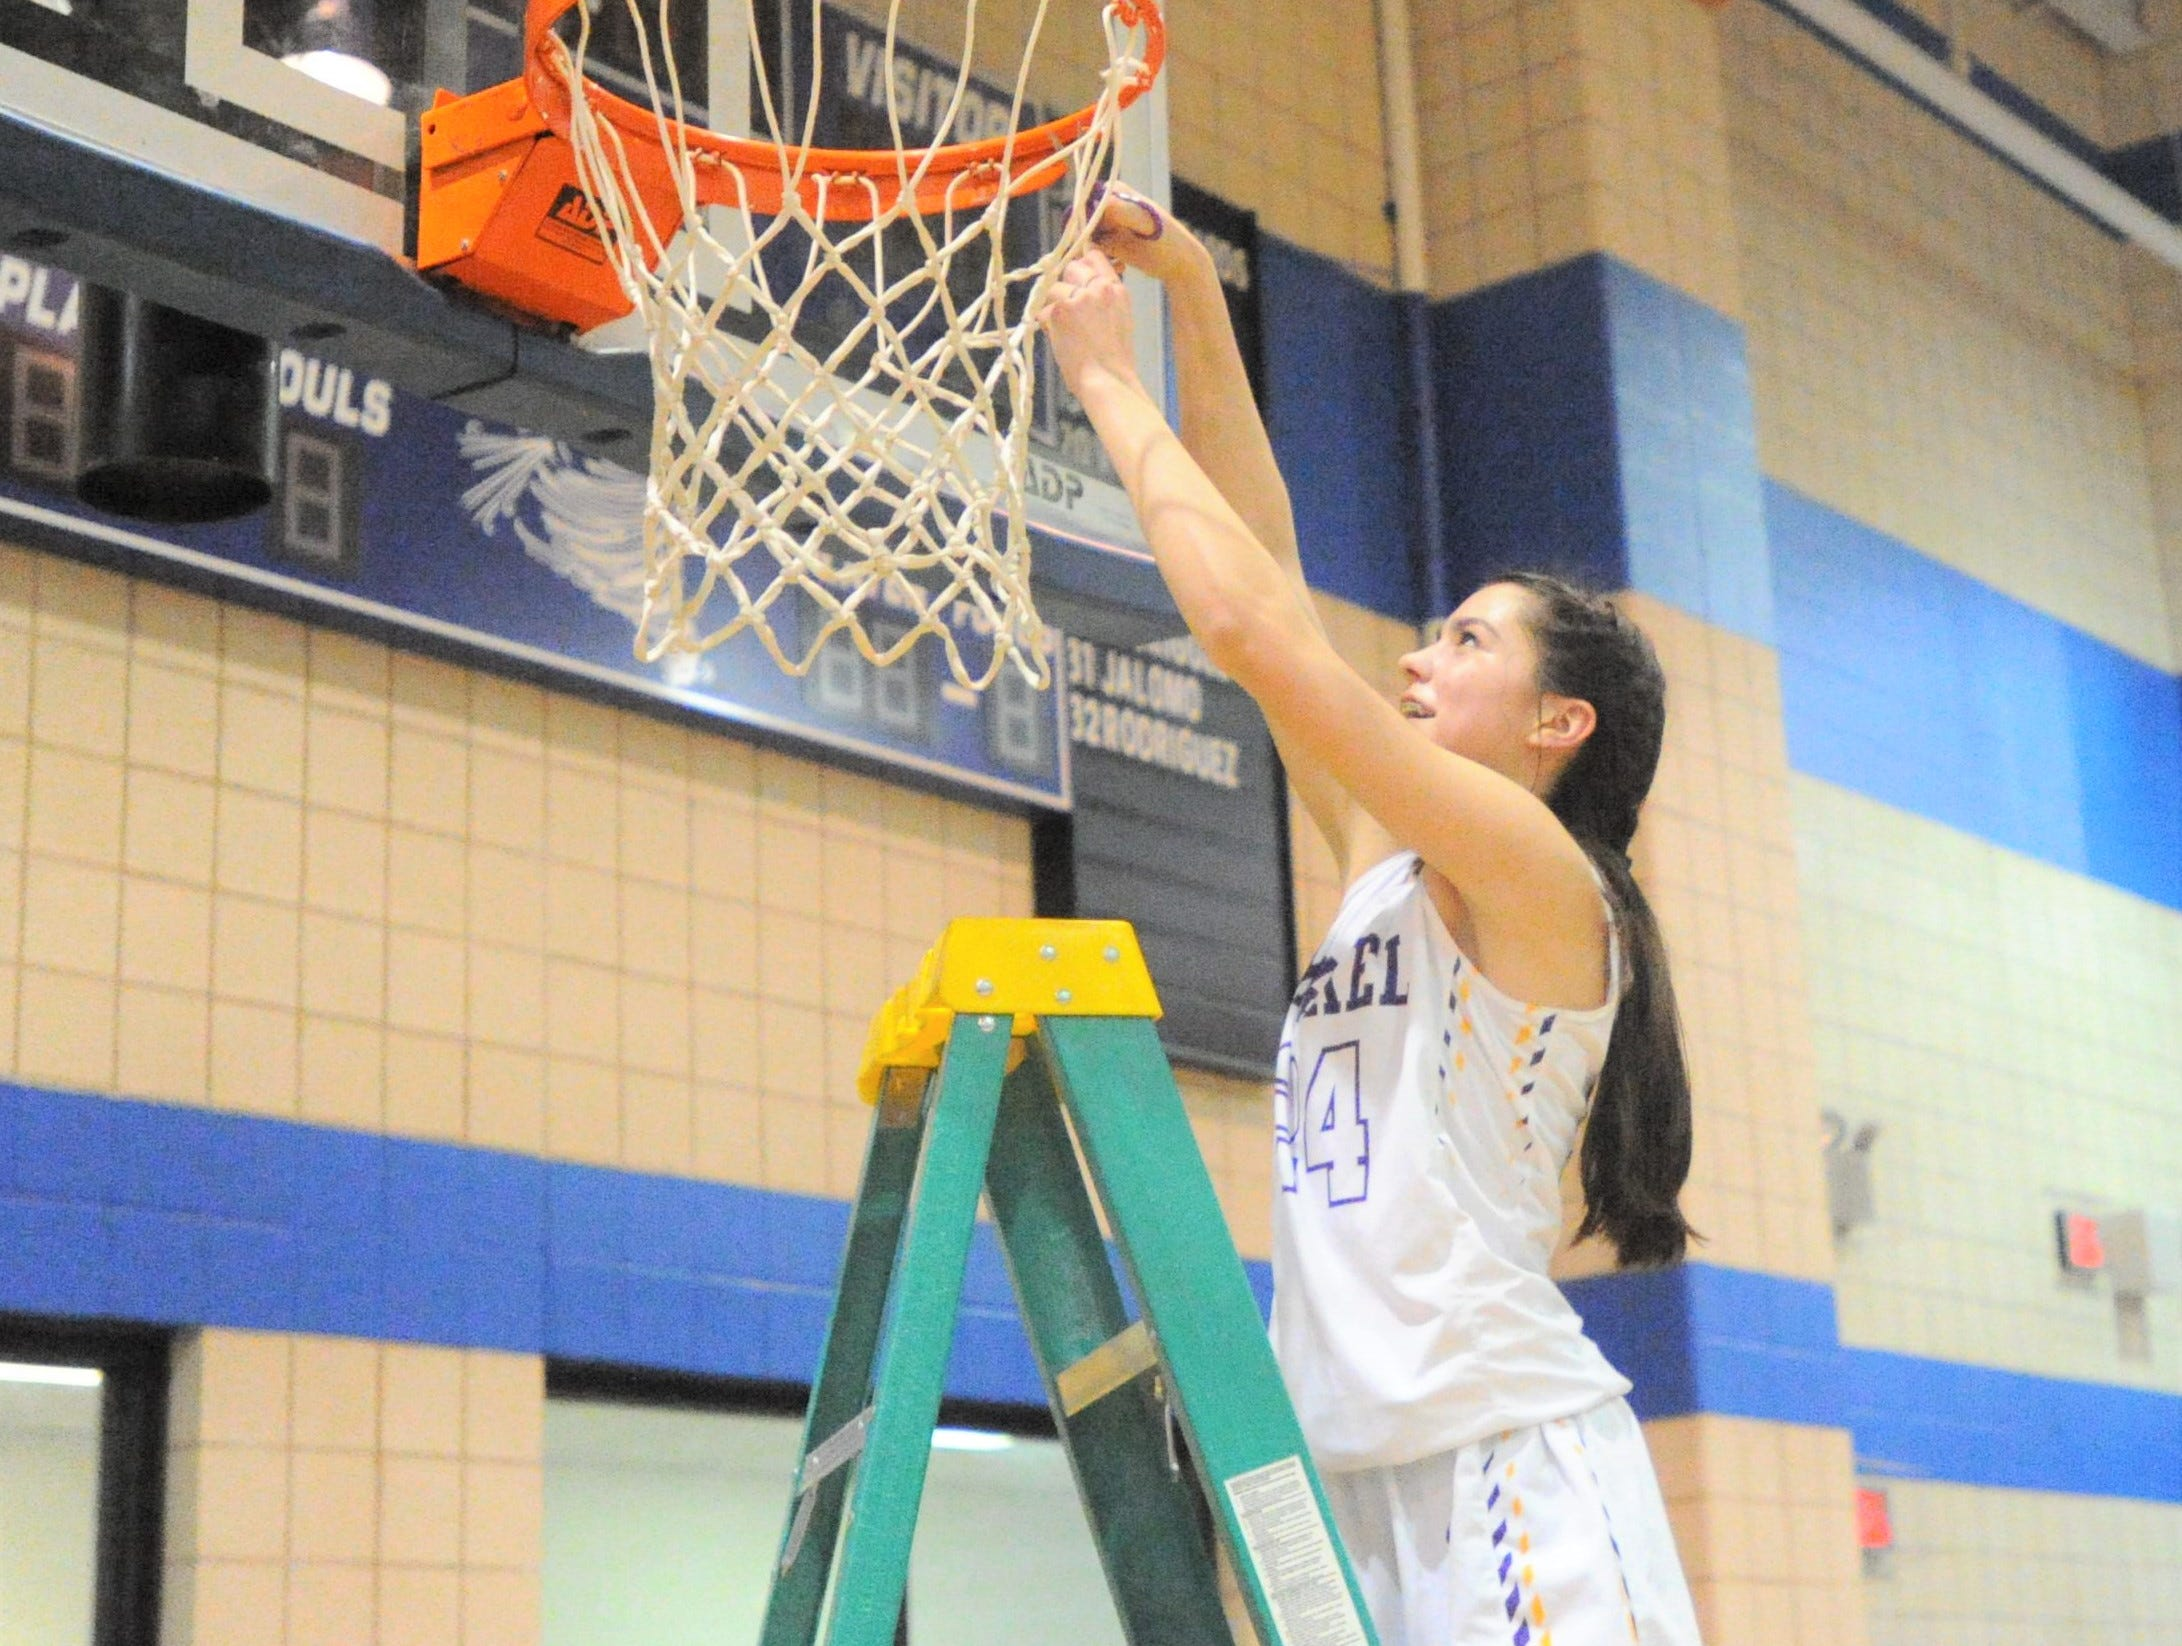 Merkel freshman Alyssa O'Malley cuts a piece of the net at Winters High School on Monday, Feb. 11, 2019, following the Lady Badgers' 49-33 win over Coleman.